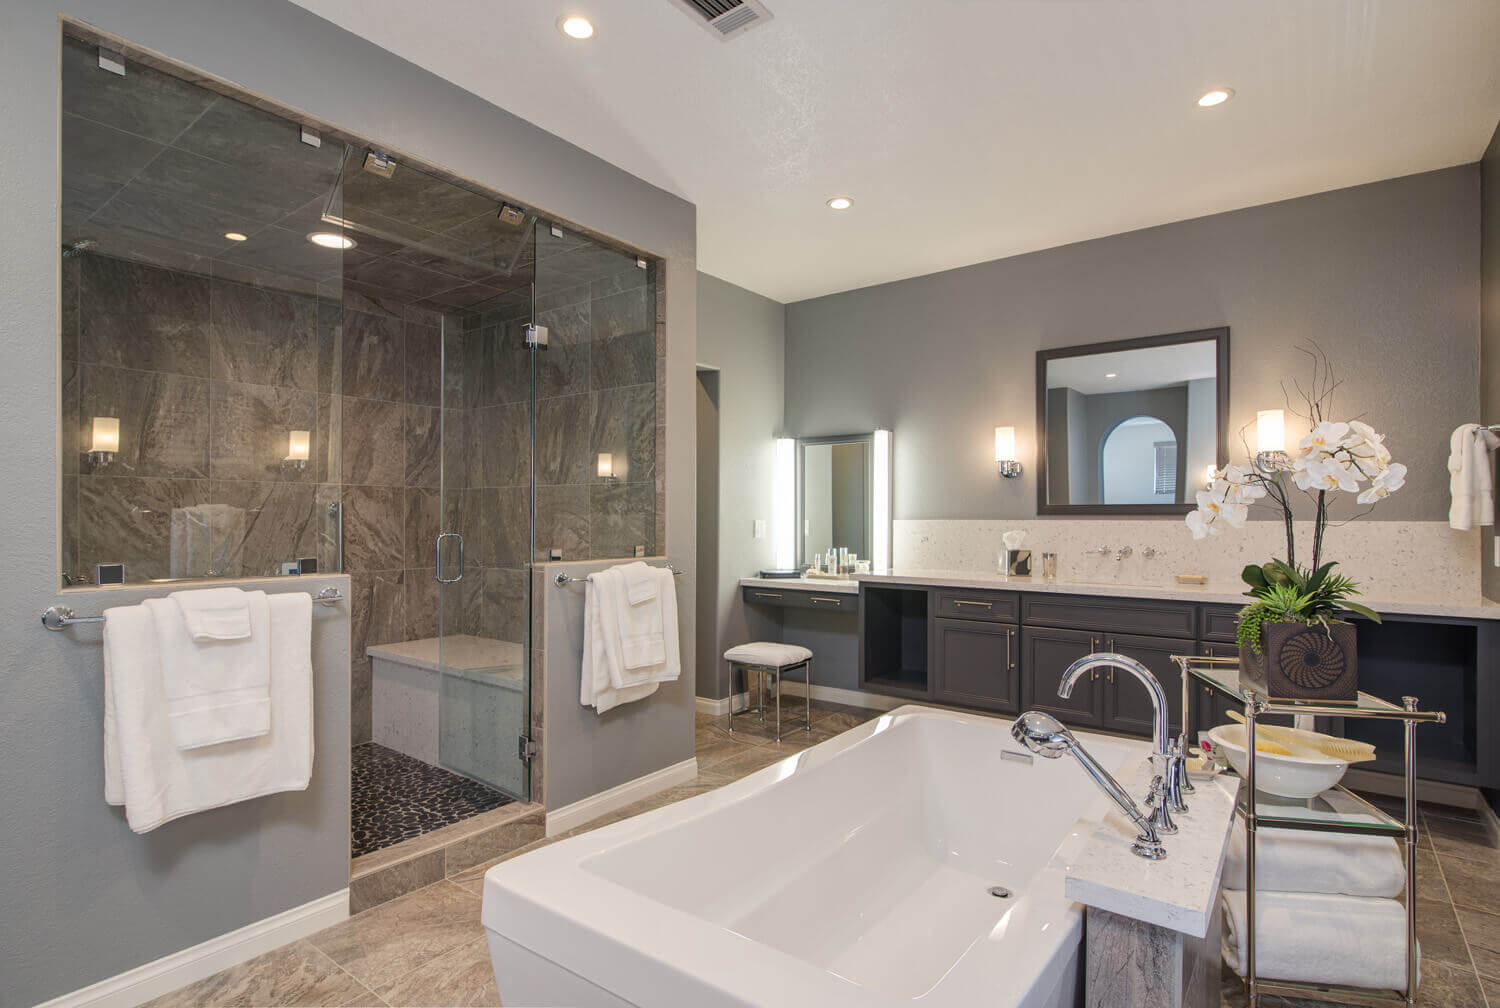 2018 bathroom renovation cost guide for Bath renovations